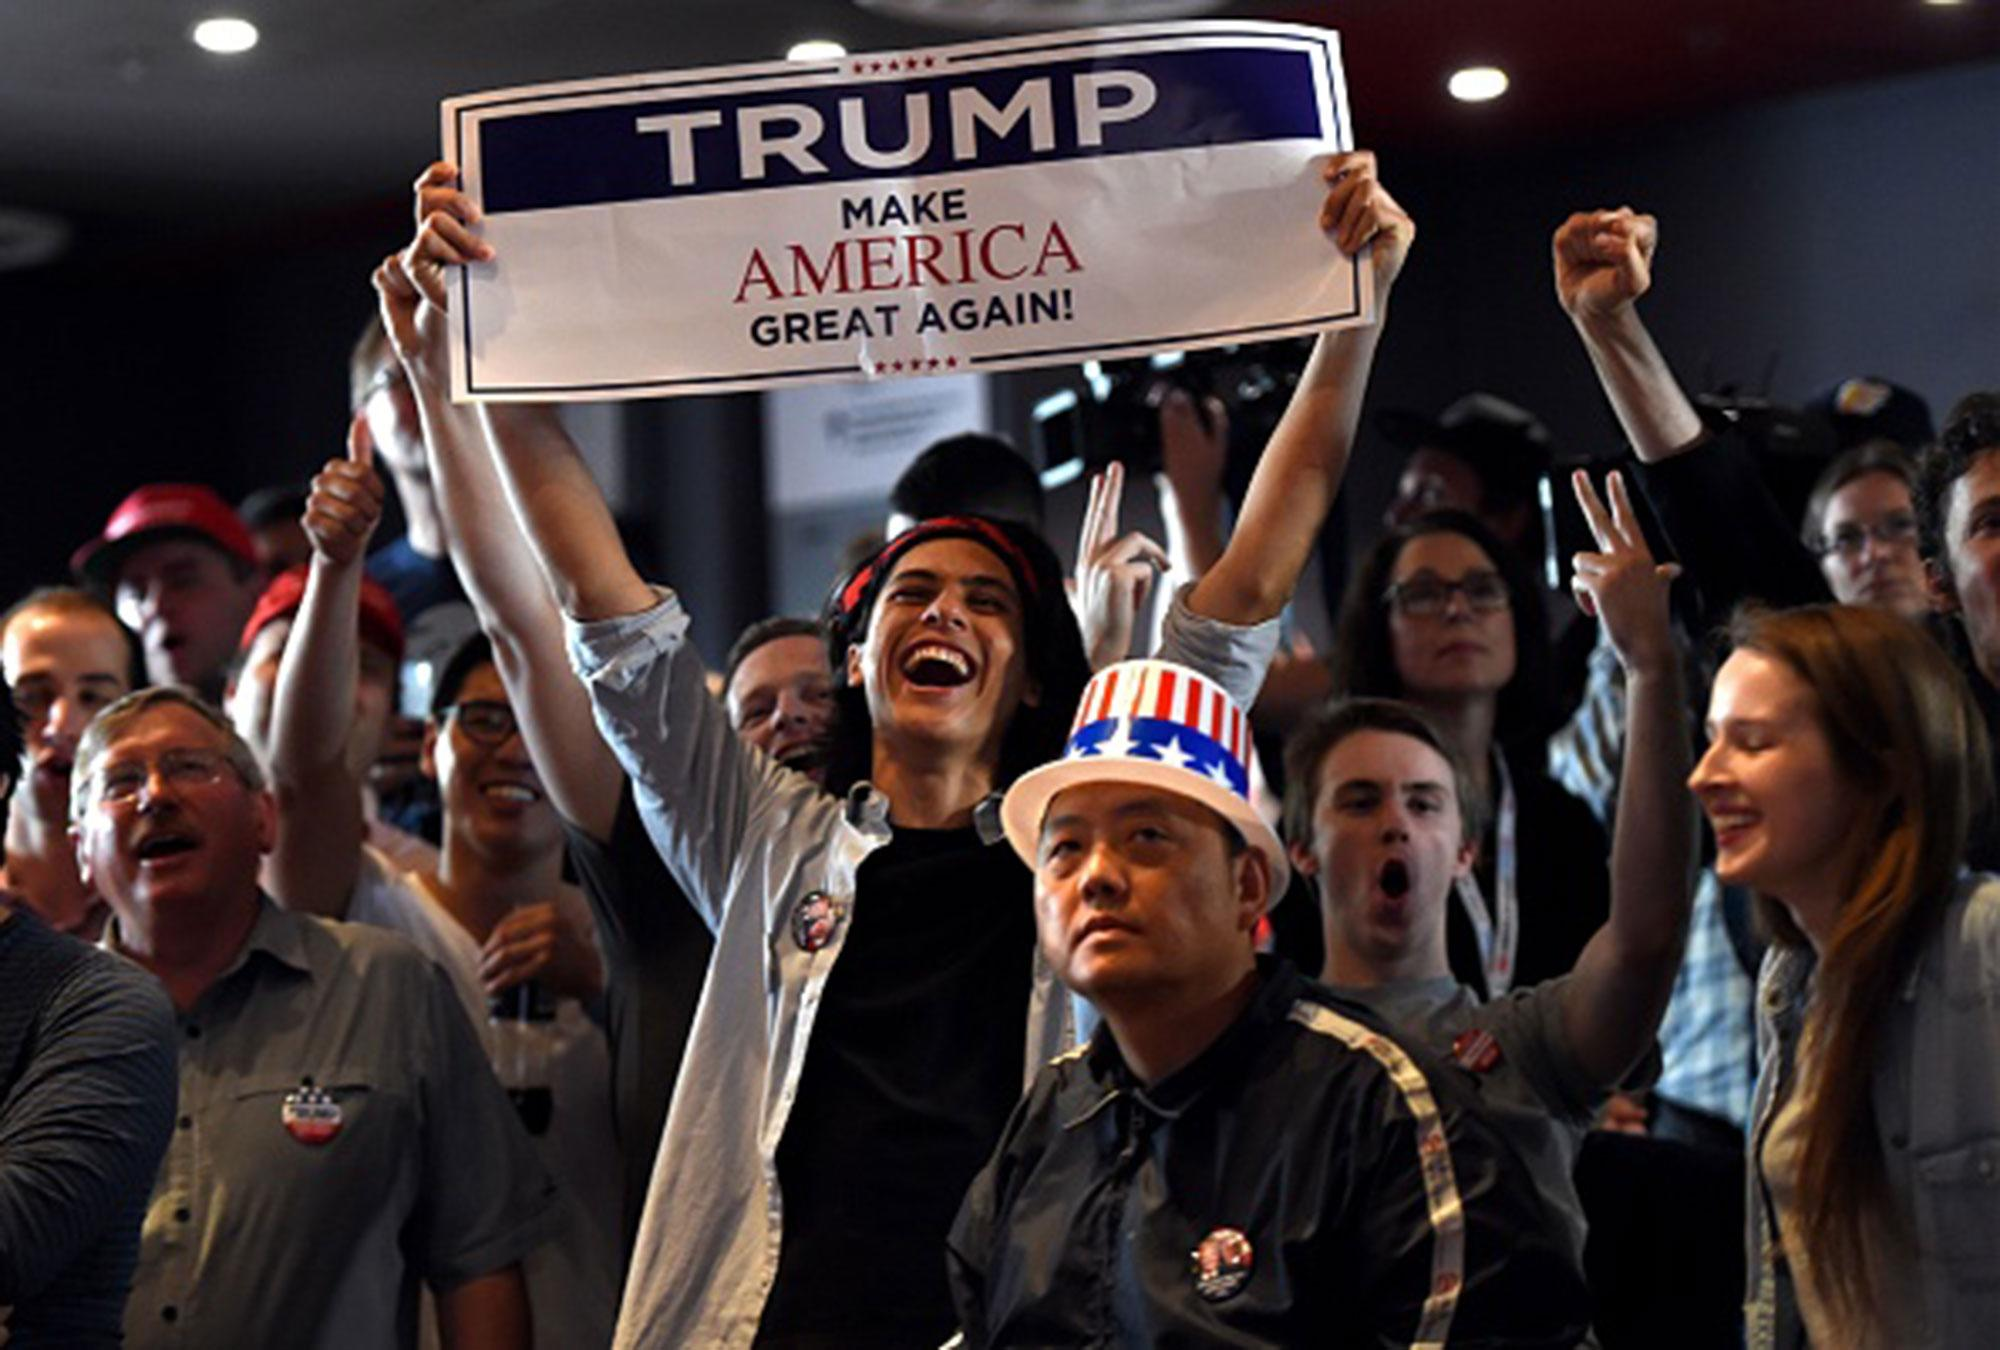 <p>Supporters of U.S. Republican candidate Donald Trump celebrate as they watch results at the United States Studies Center at the University of Sydney on November 9, 2016. (Photo: Saeed Khan/AFP/Getty Images) </p>